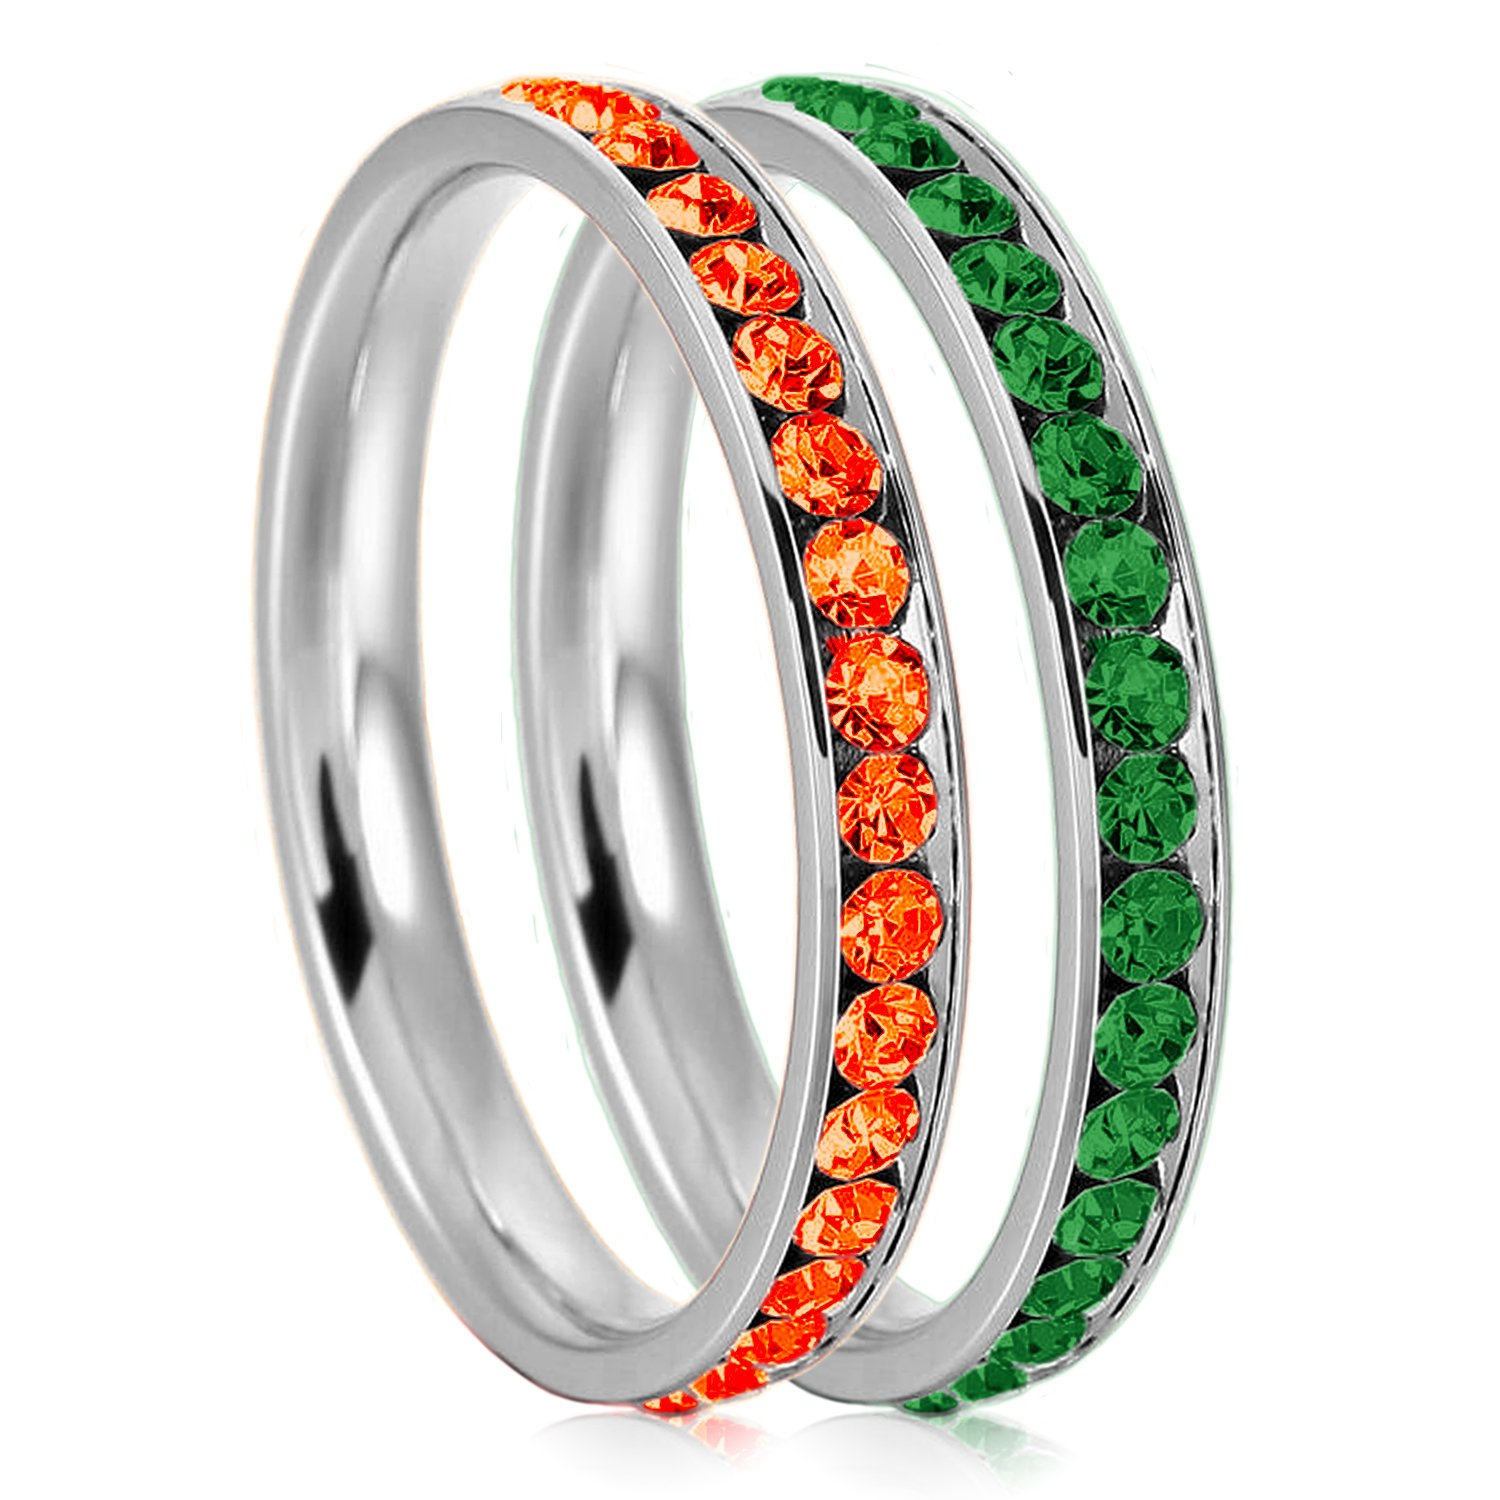 3mm Stainless Steel Eternity Hyacinth & Emerald Color Crystal Stackable Wedding Band Rings (2 pieces) Set, Size 6